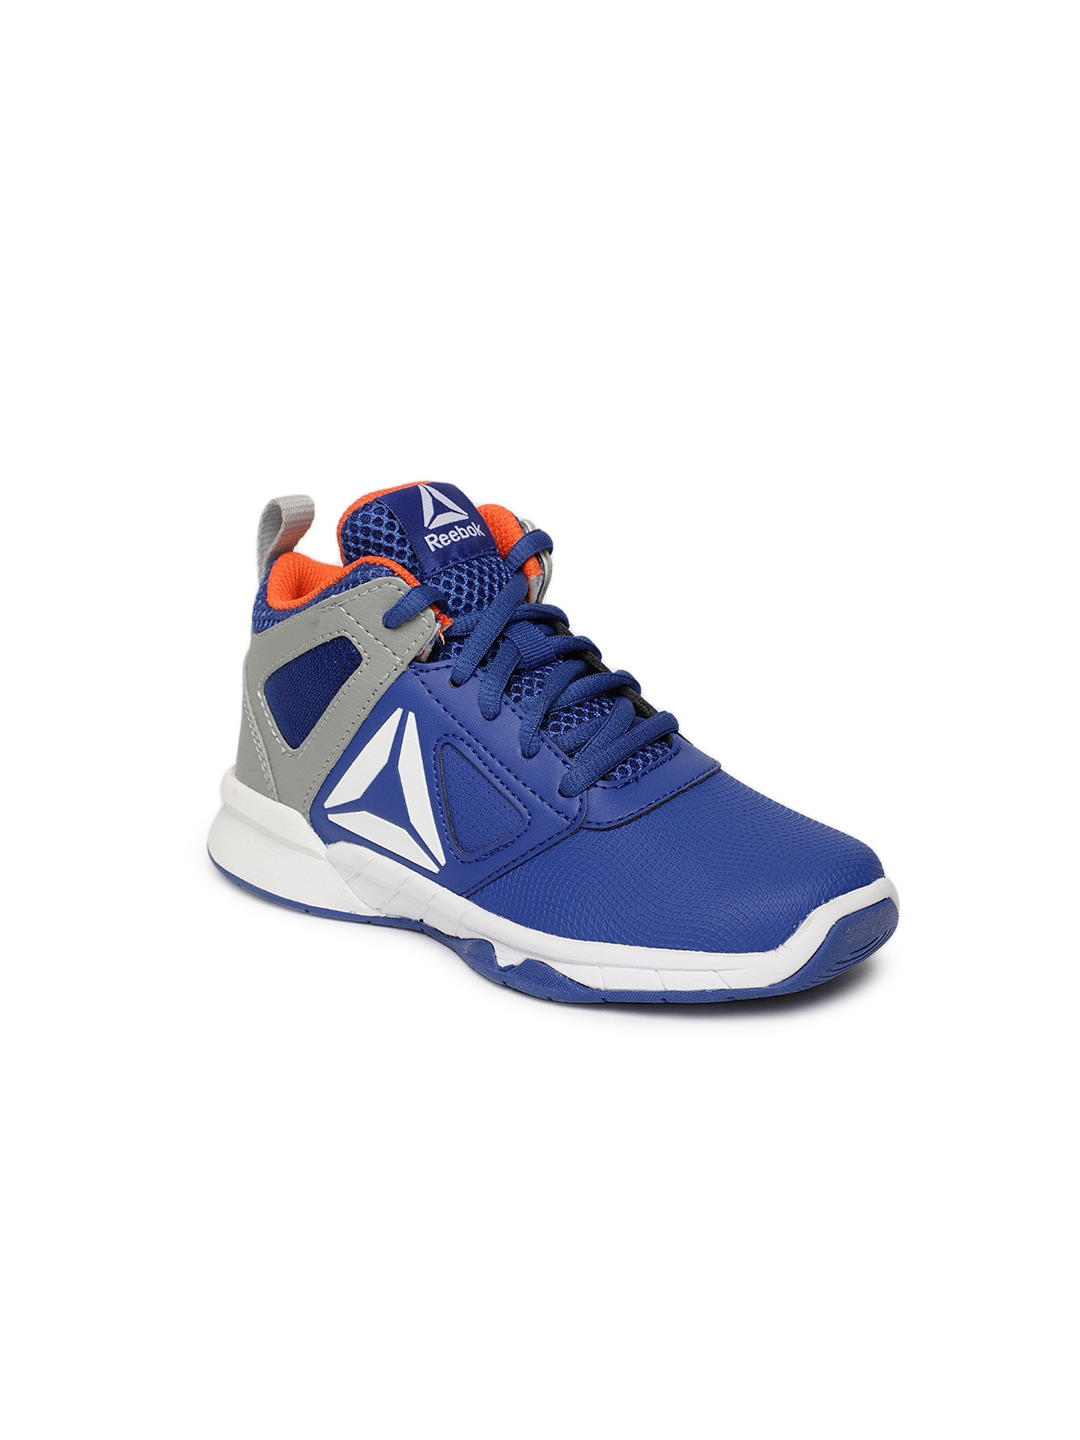 c4d9e7ab3f94ba Reebok Casual Shoes - Buy Reebok Casual Shoes Online in India